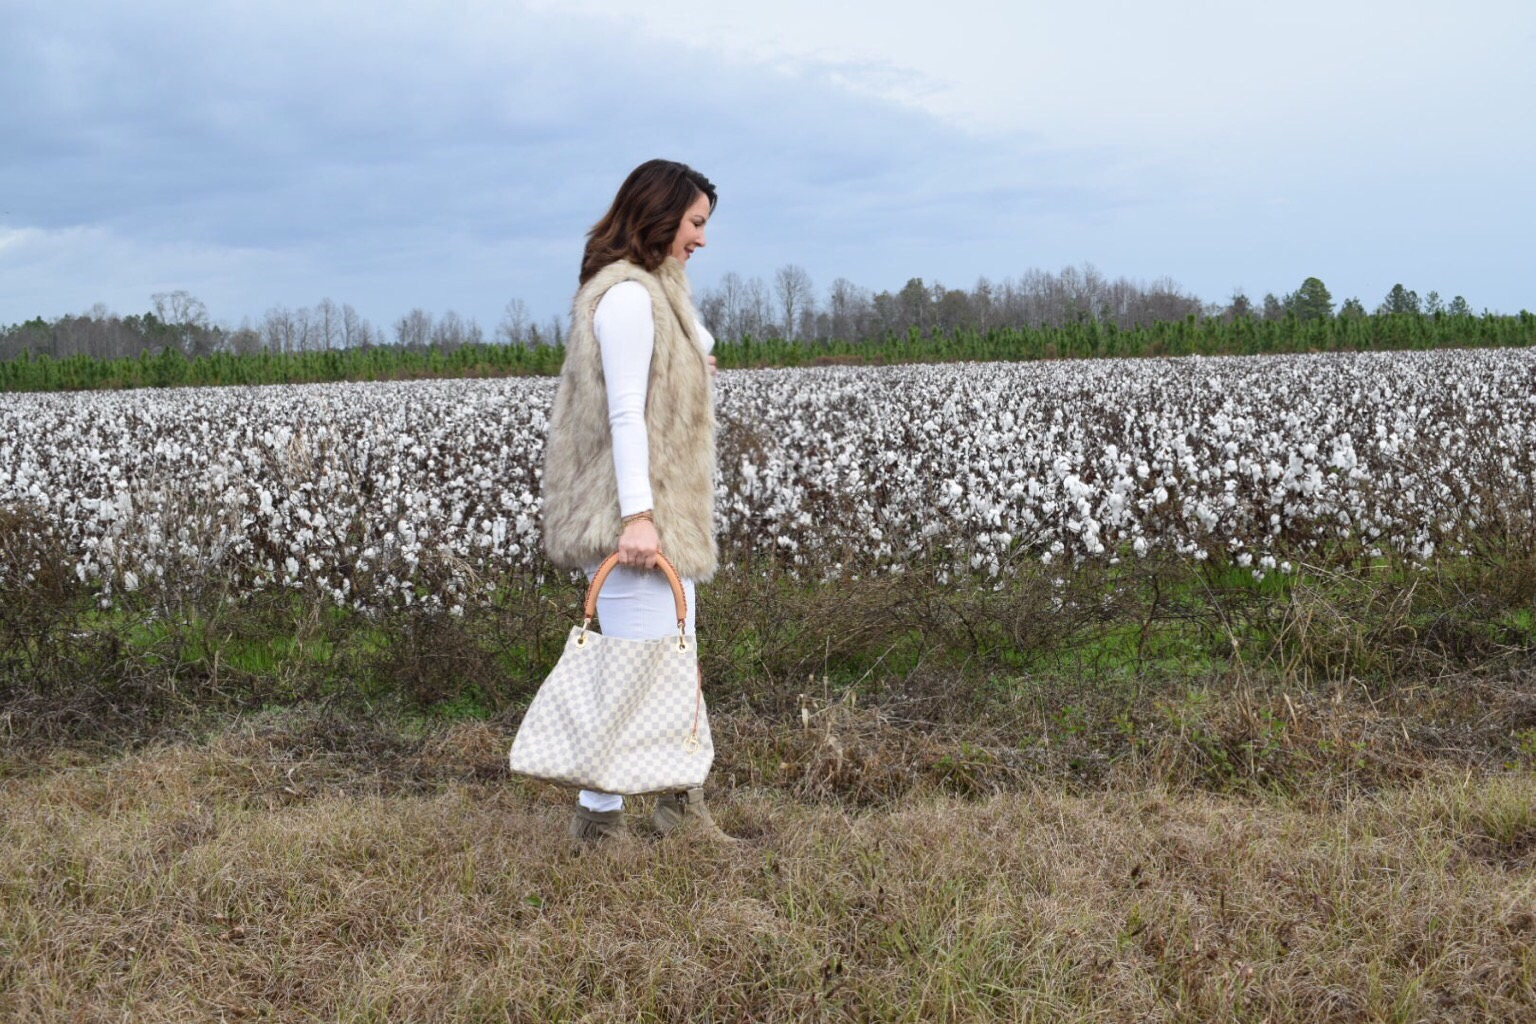 Kim Bishop walking in a cotton field in winter white and faux fur vest with Luis Vuitton Damier Azur Artsy bag